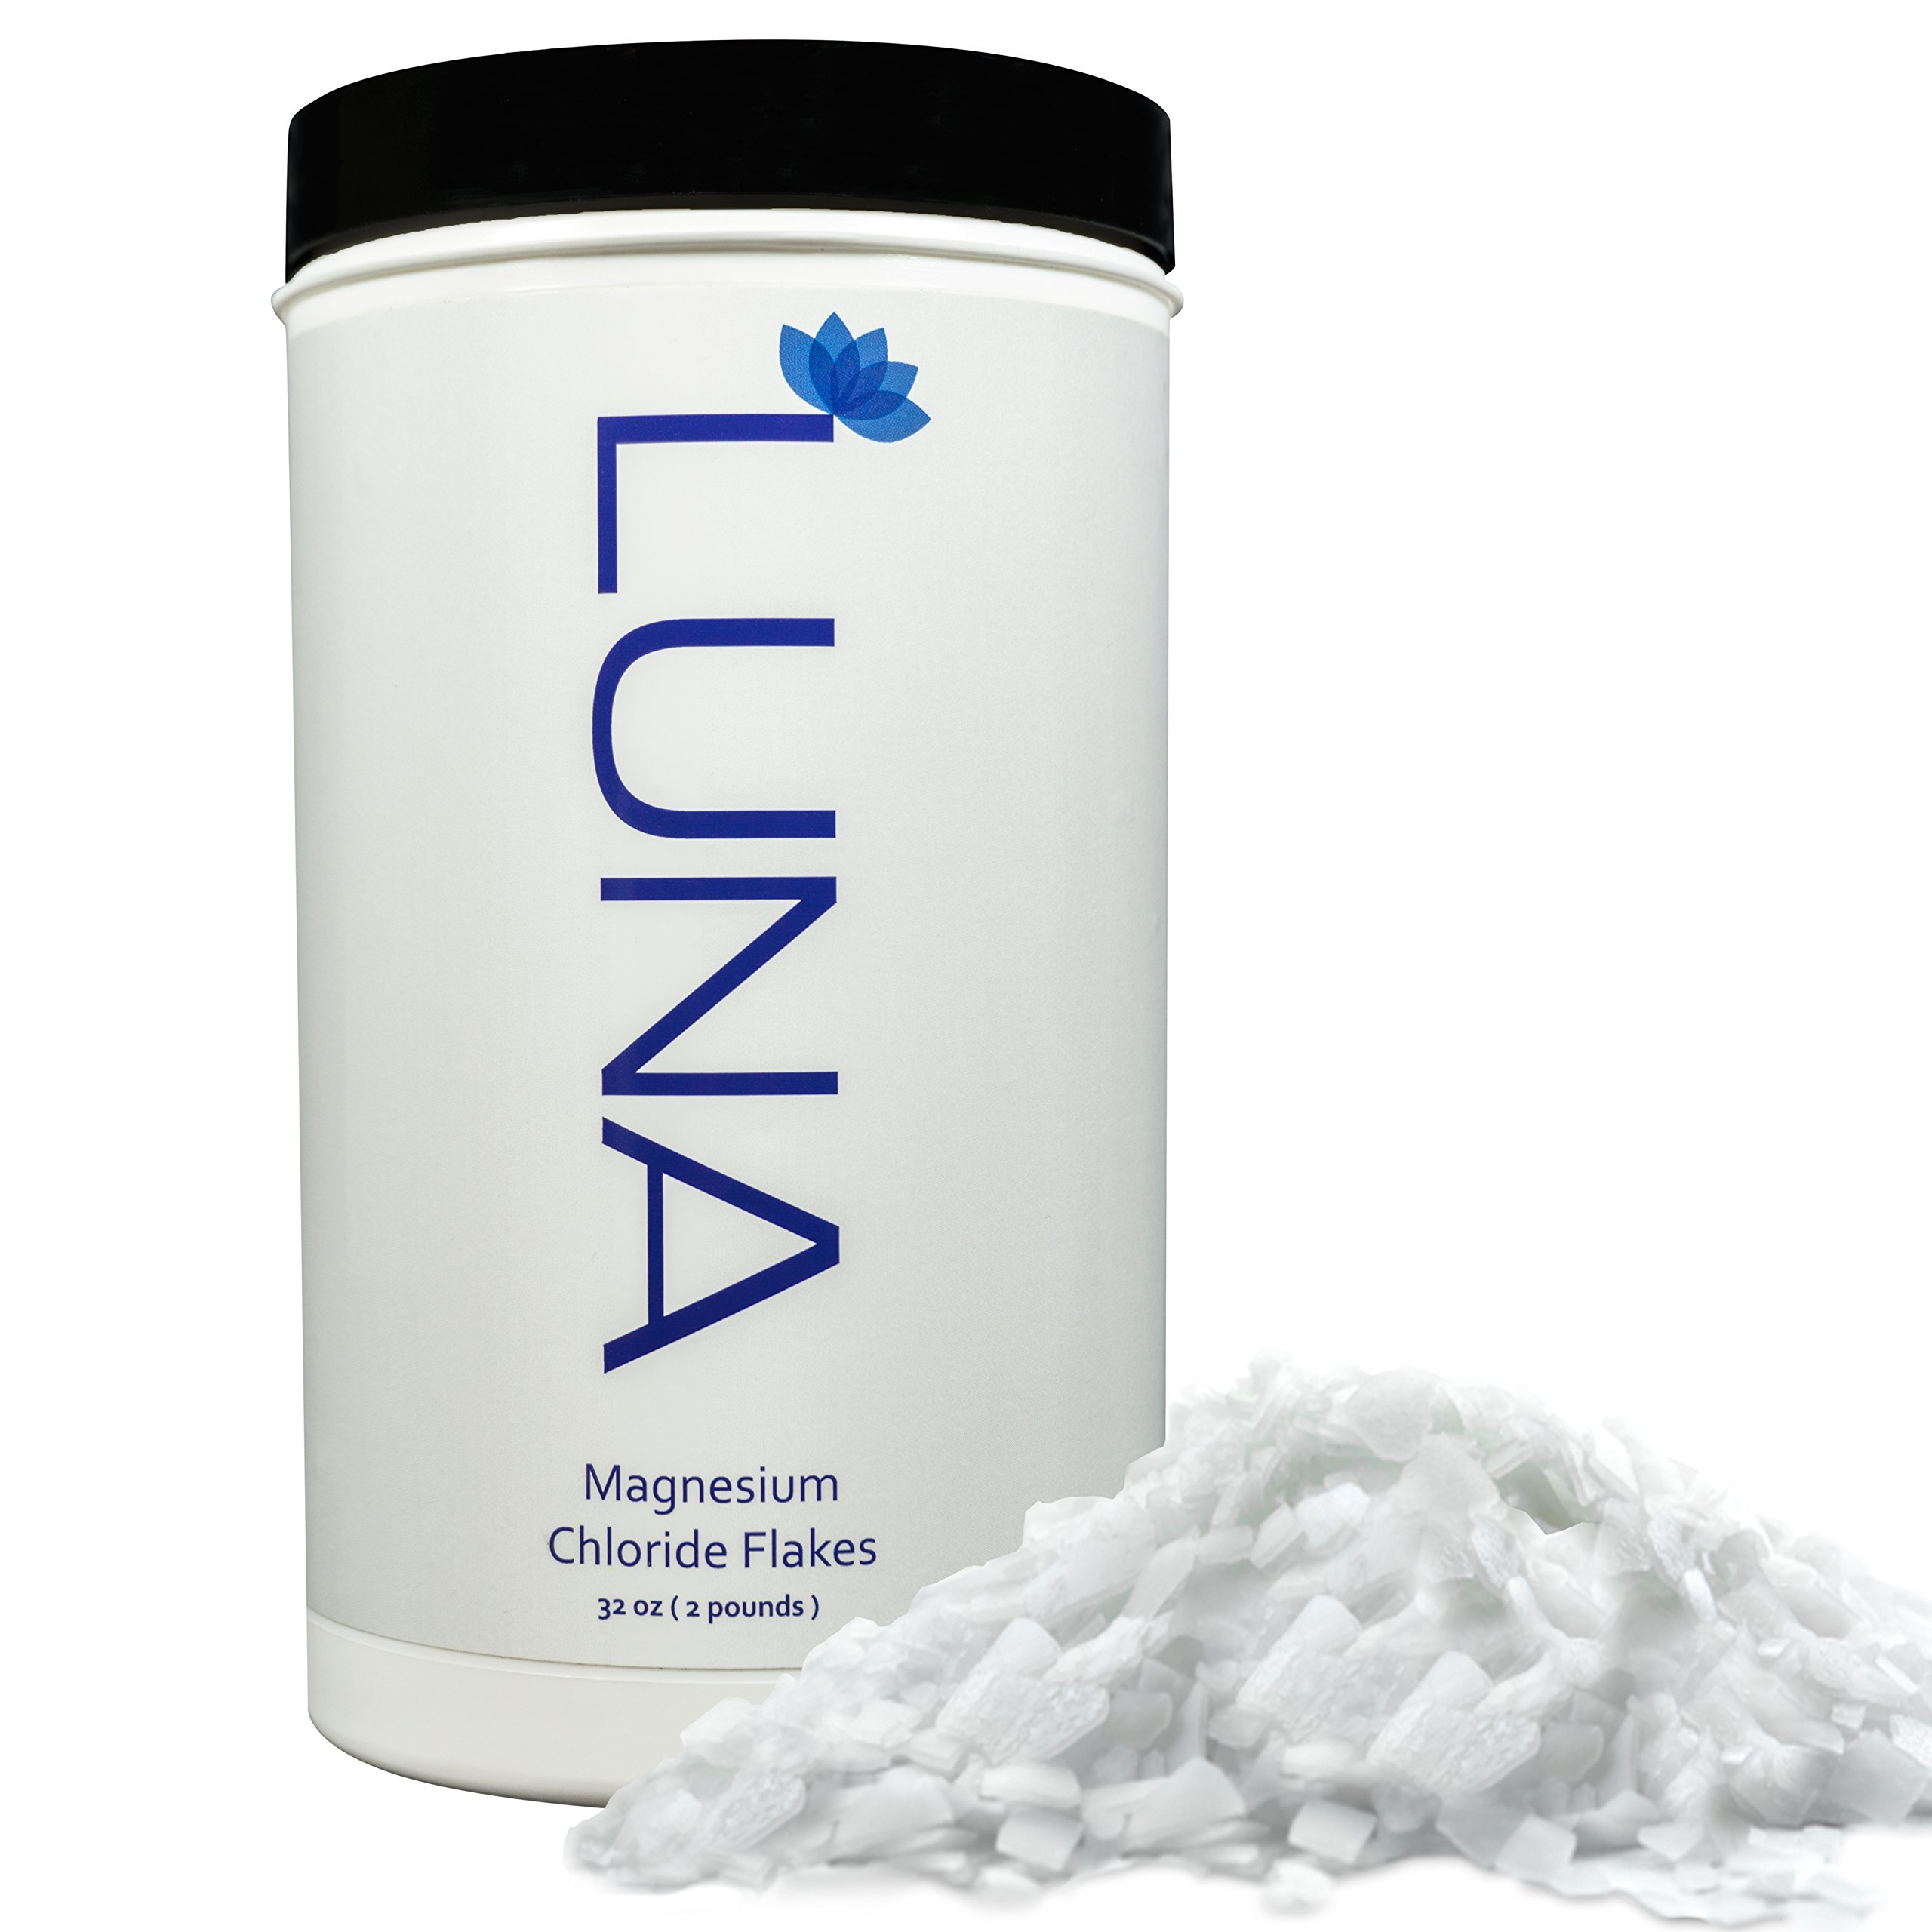 Luna 100% Pure Magnesium Chloride Flakes 2 lb - for Foot and Body Soaks -